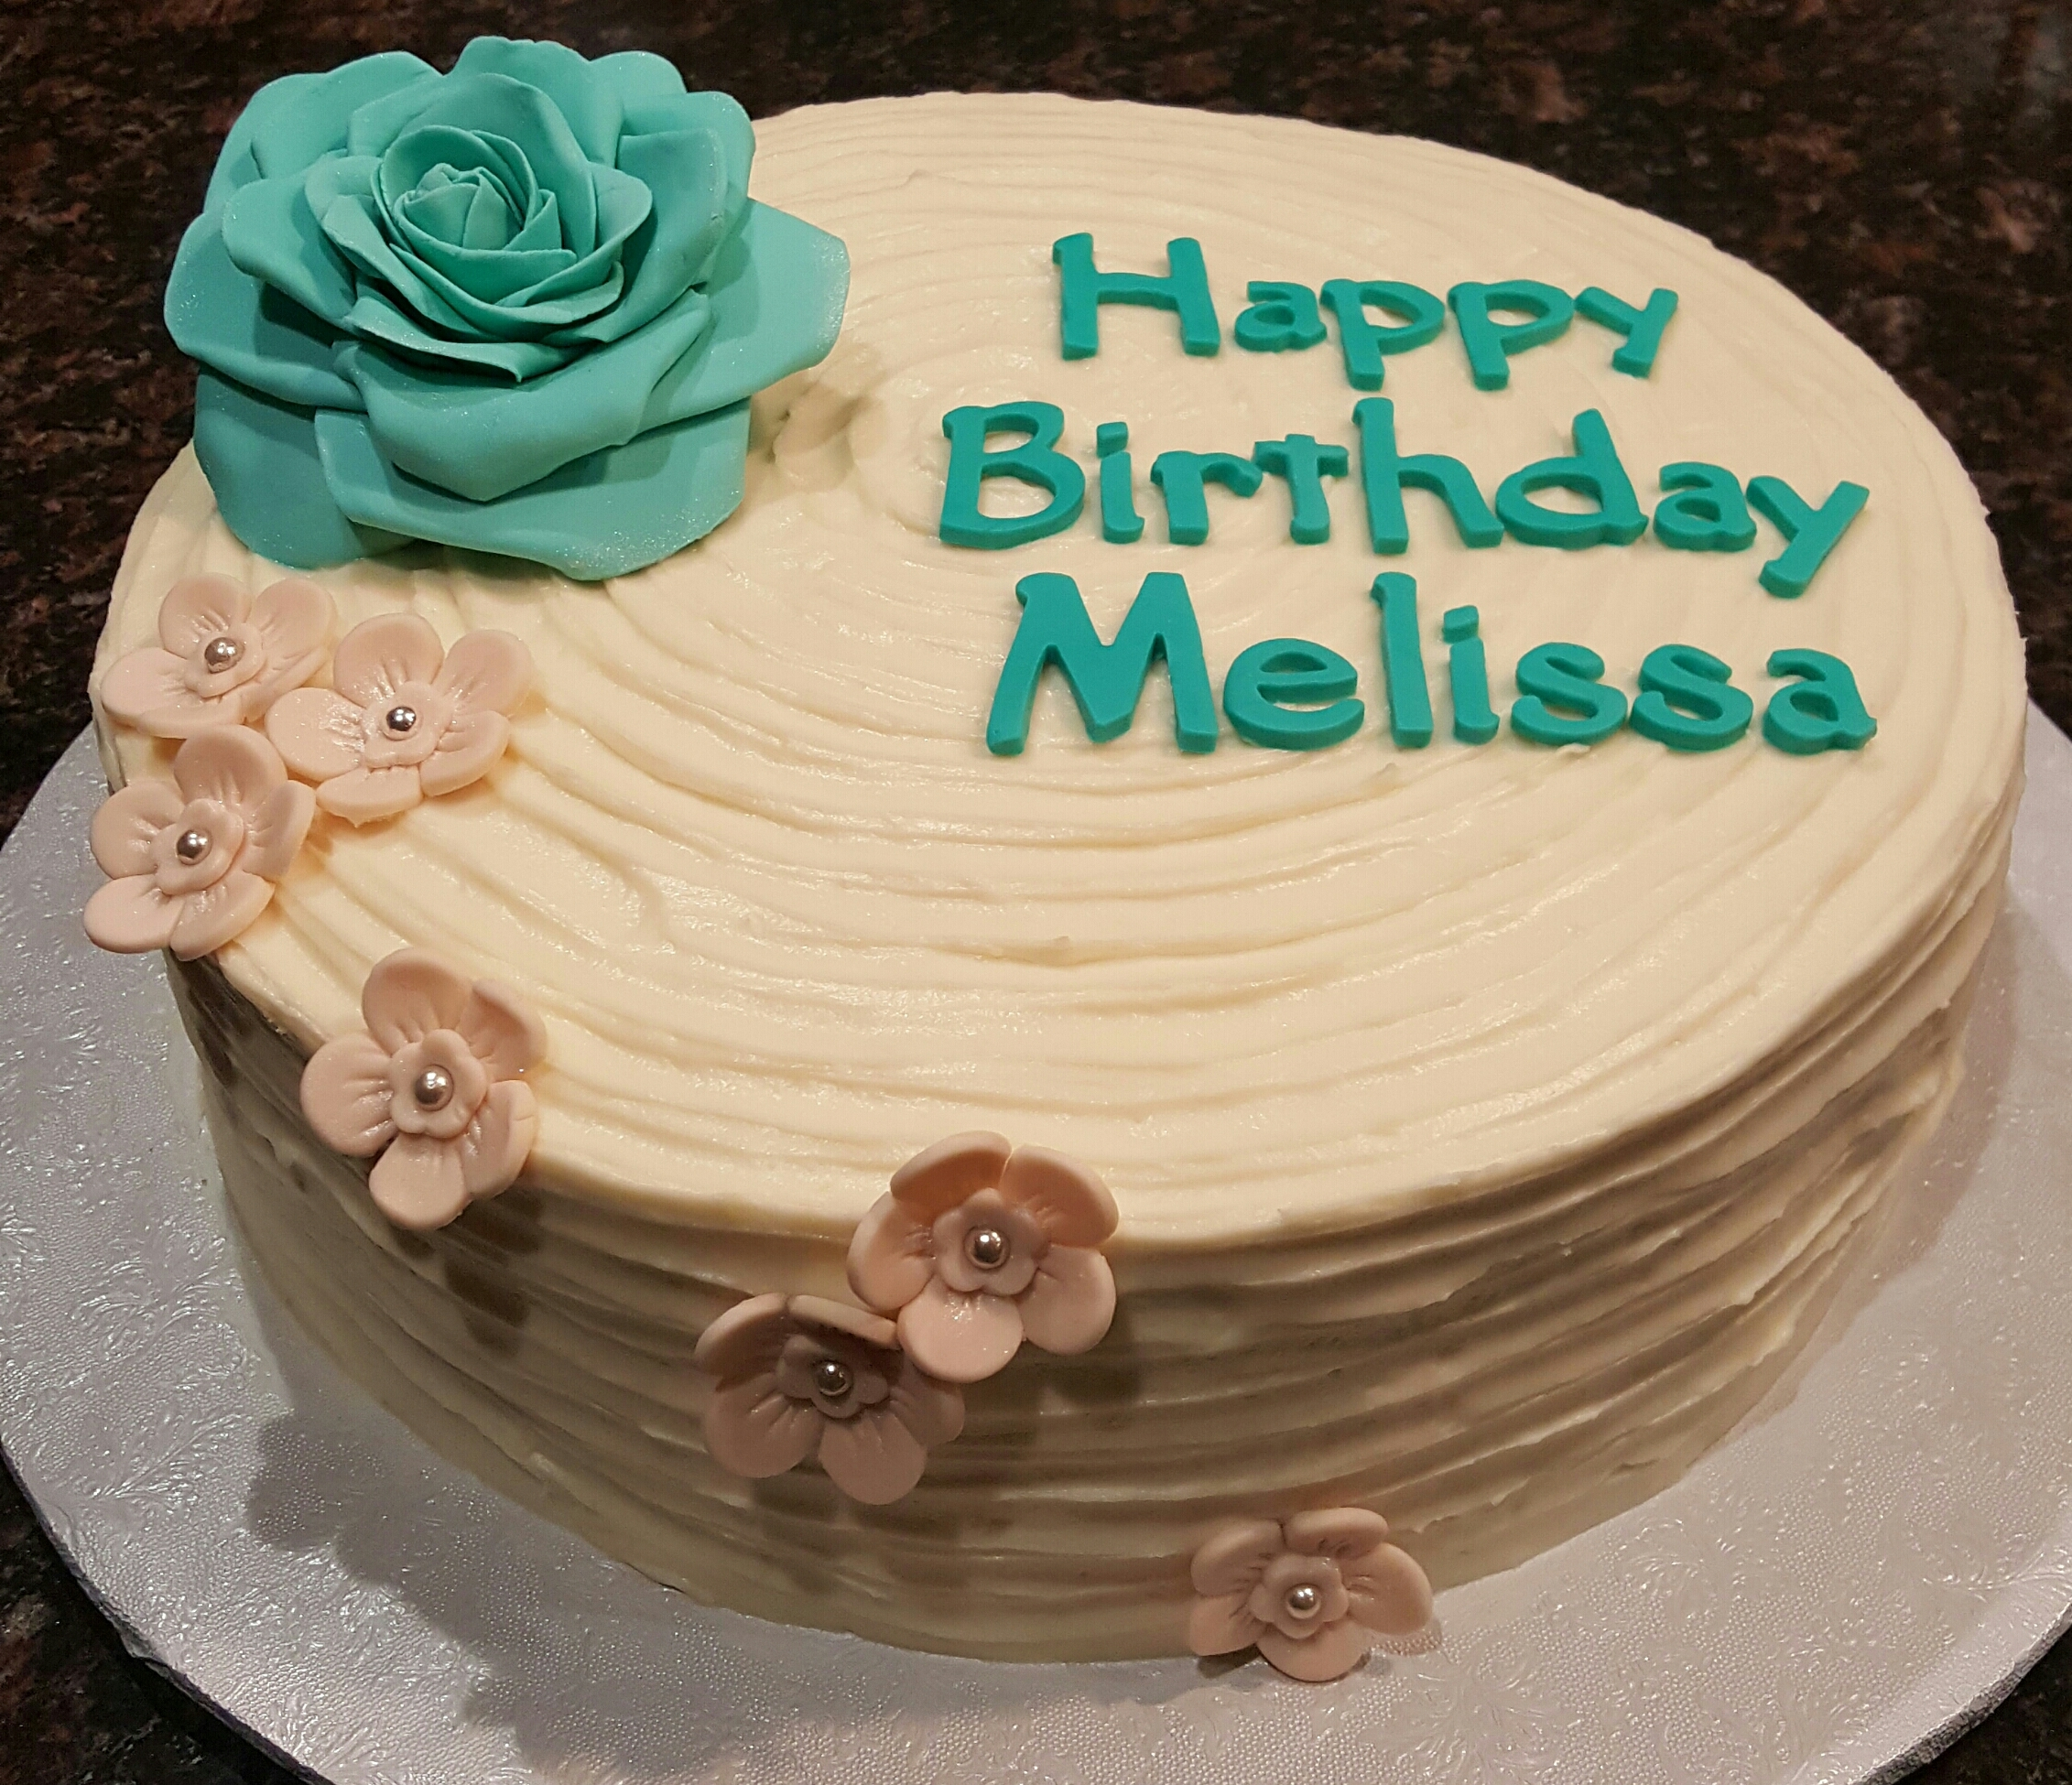 Teal rose flower birthday cake cakecentral teal rose flower birthday cake on cake central izmirmasajfo